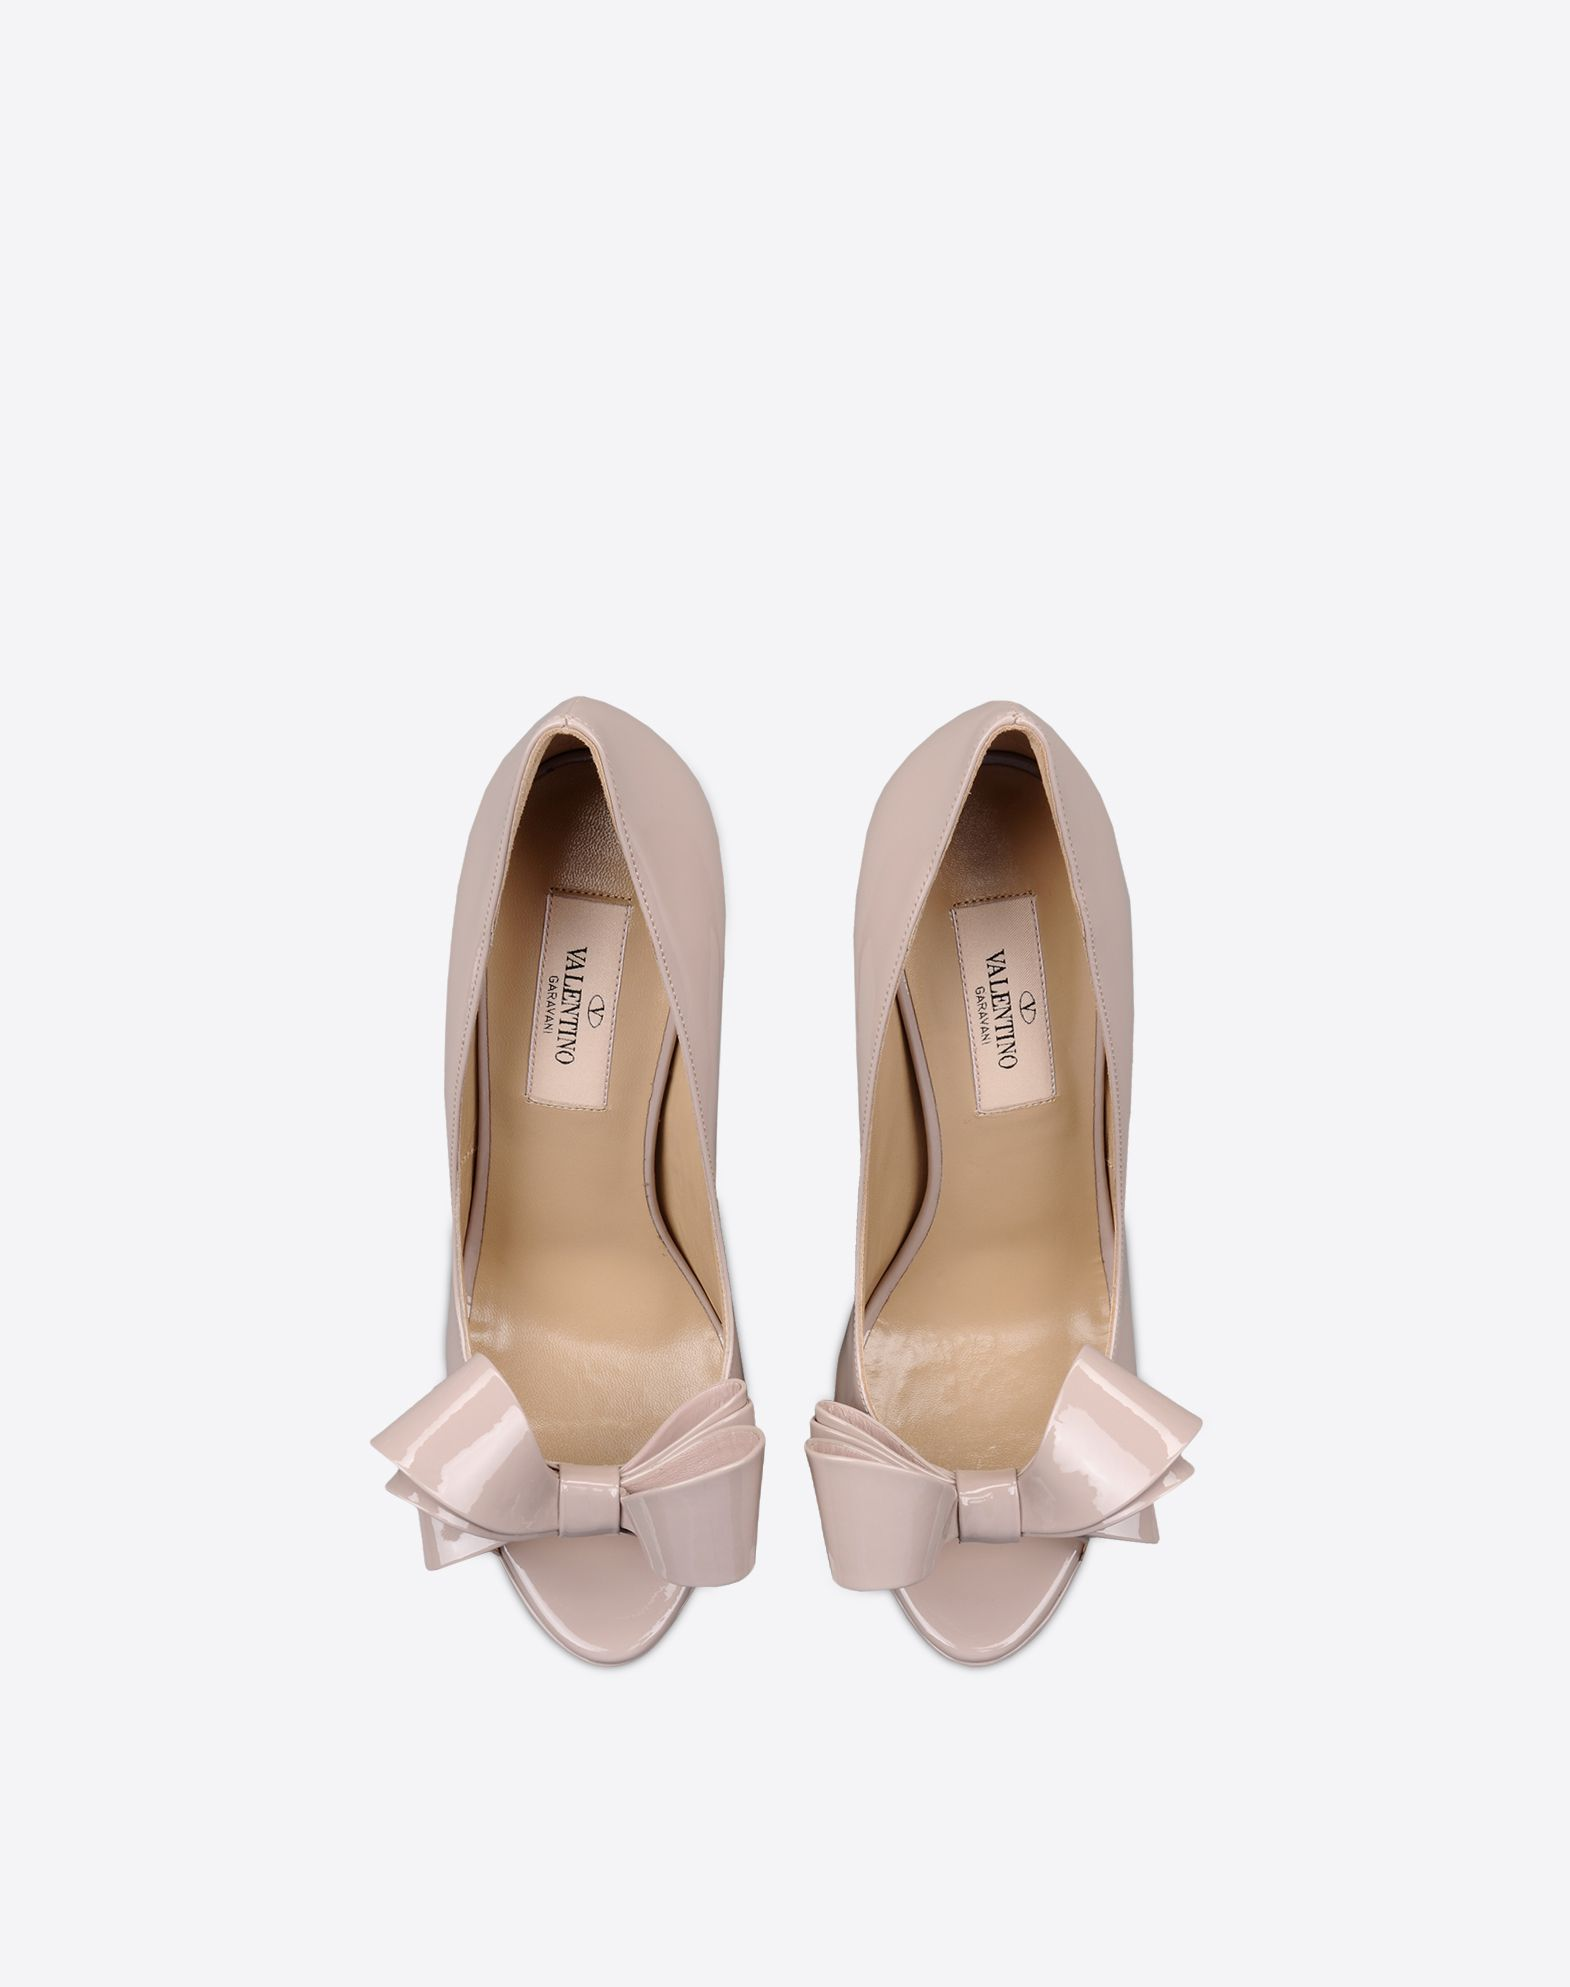 VALENTINO Bow detailing Varnished effect Solid color Leather sole Narrow toeline Spike heel  44921917as